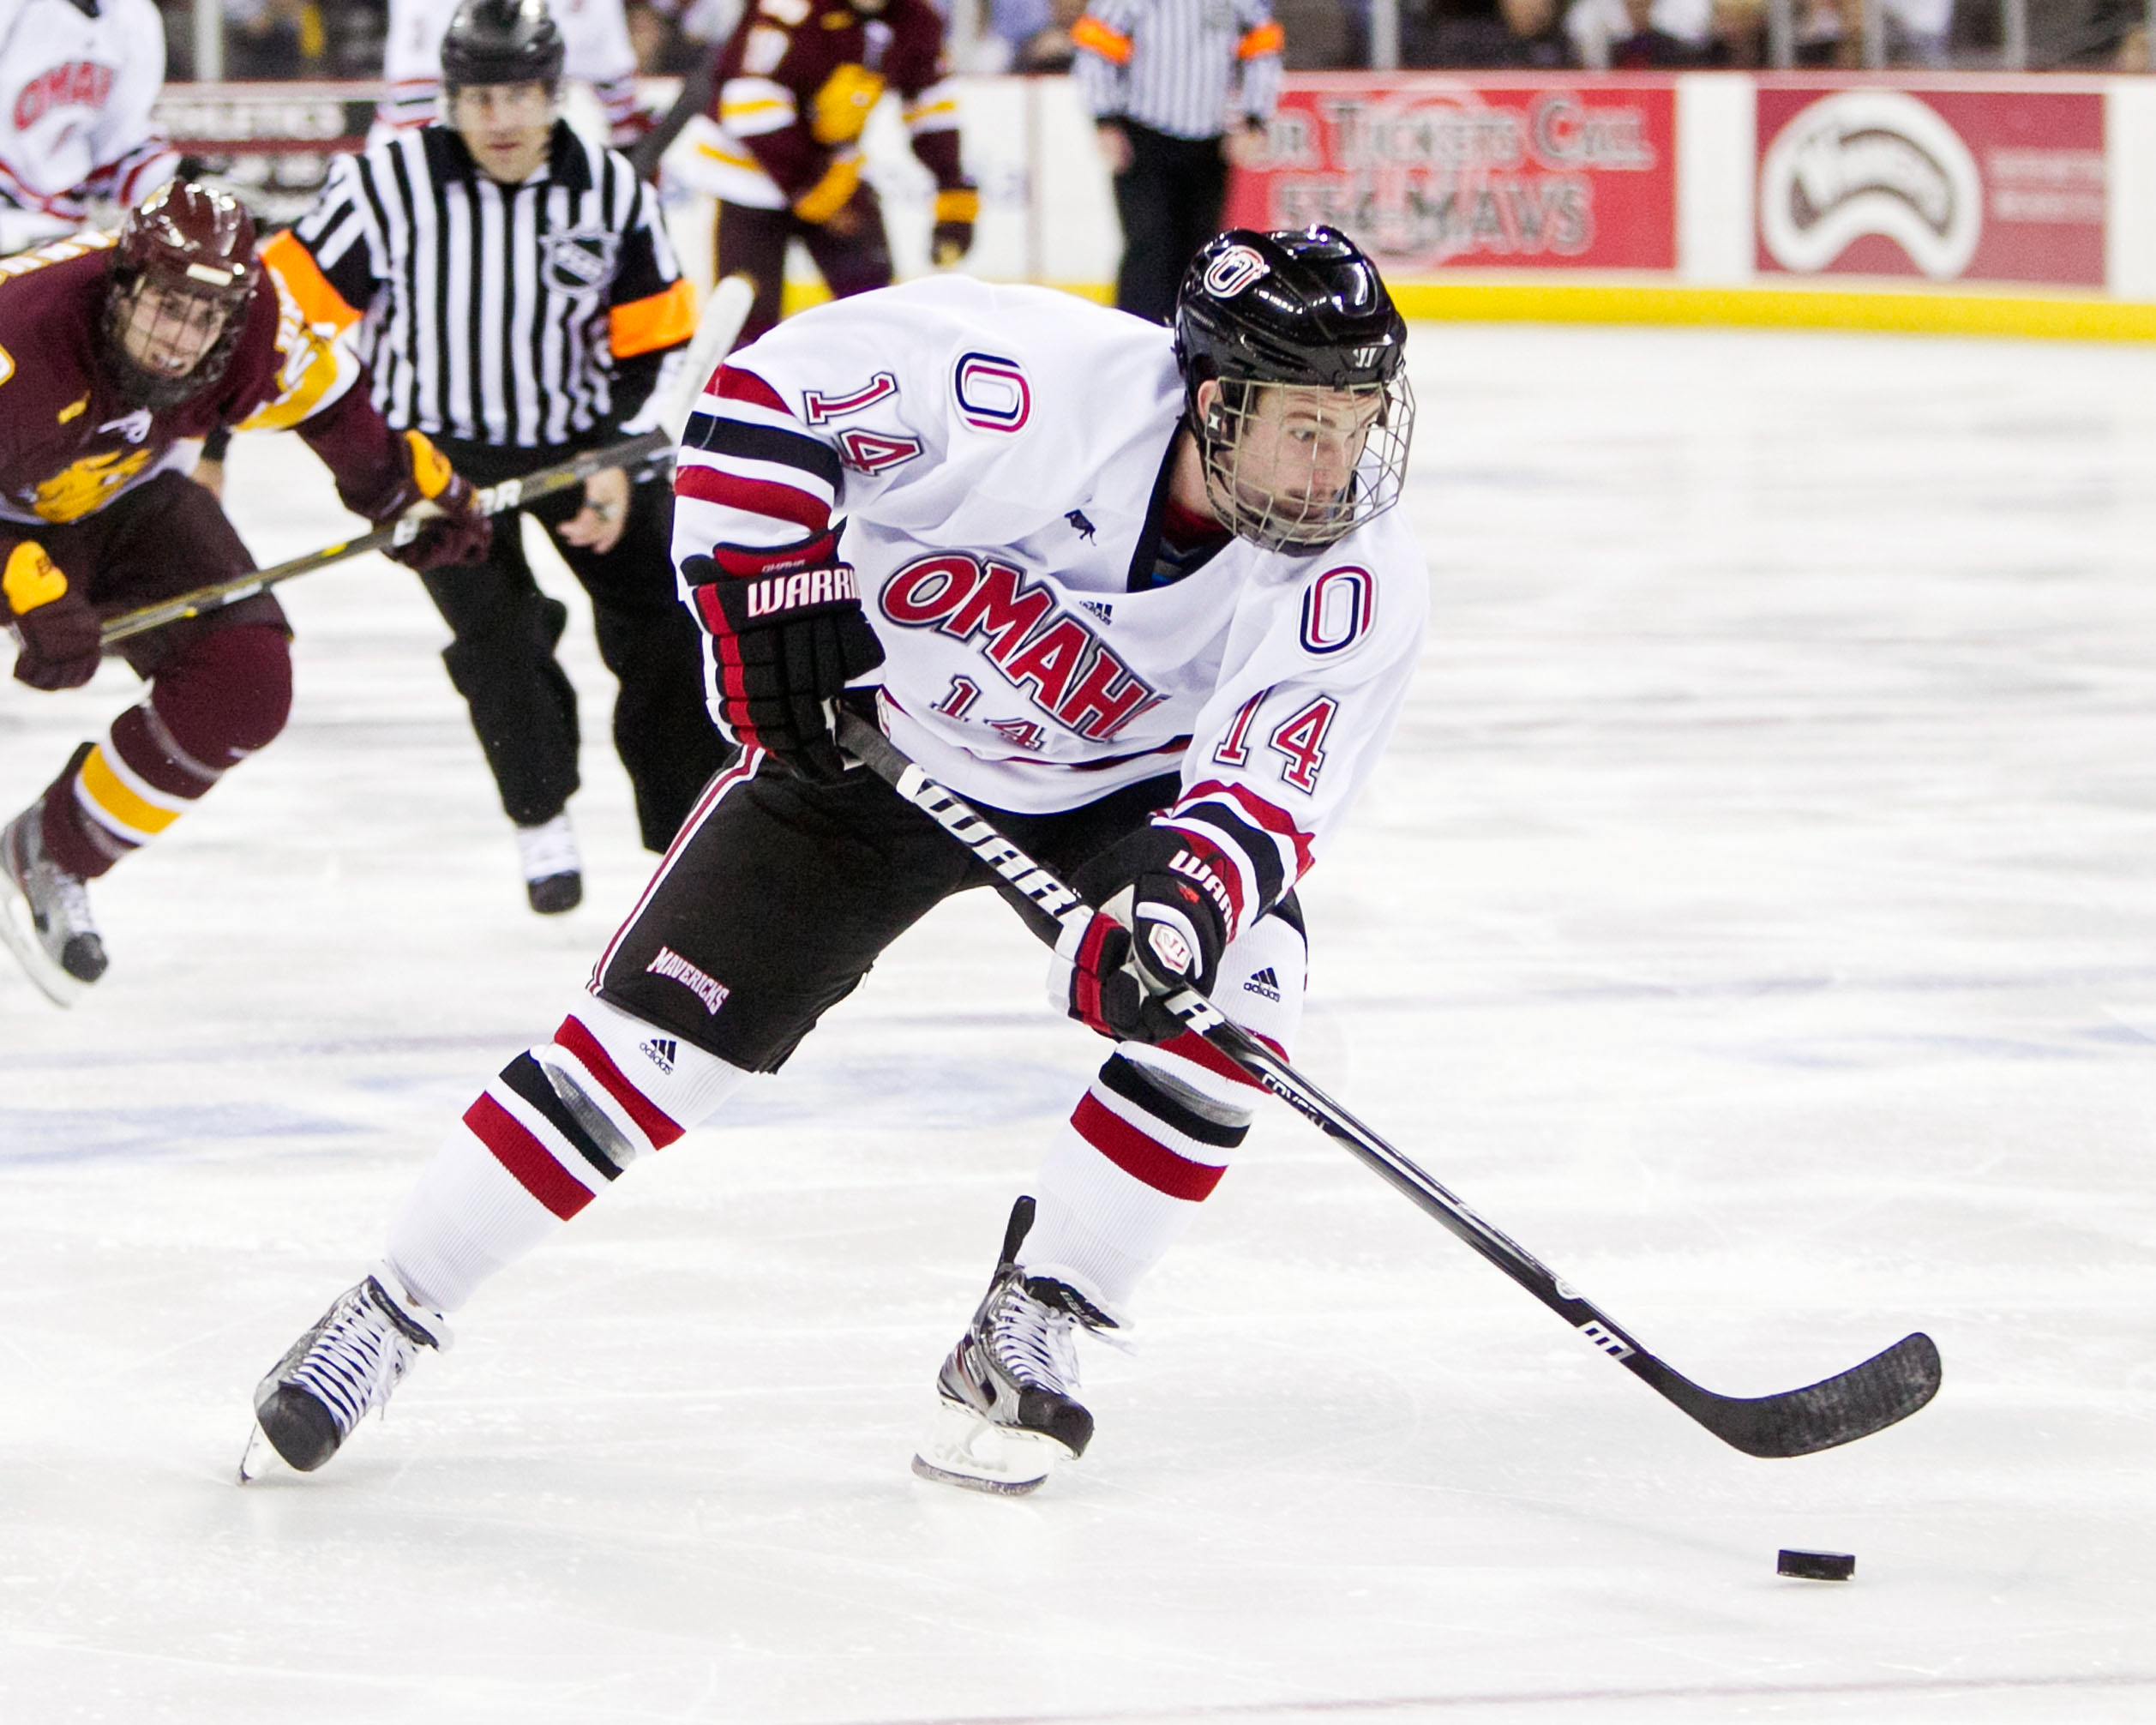 Nchc Rematch: Uno Looks To Break Out Of Mid-Season Rut